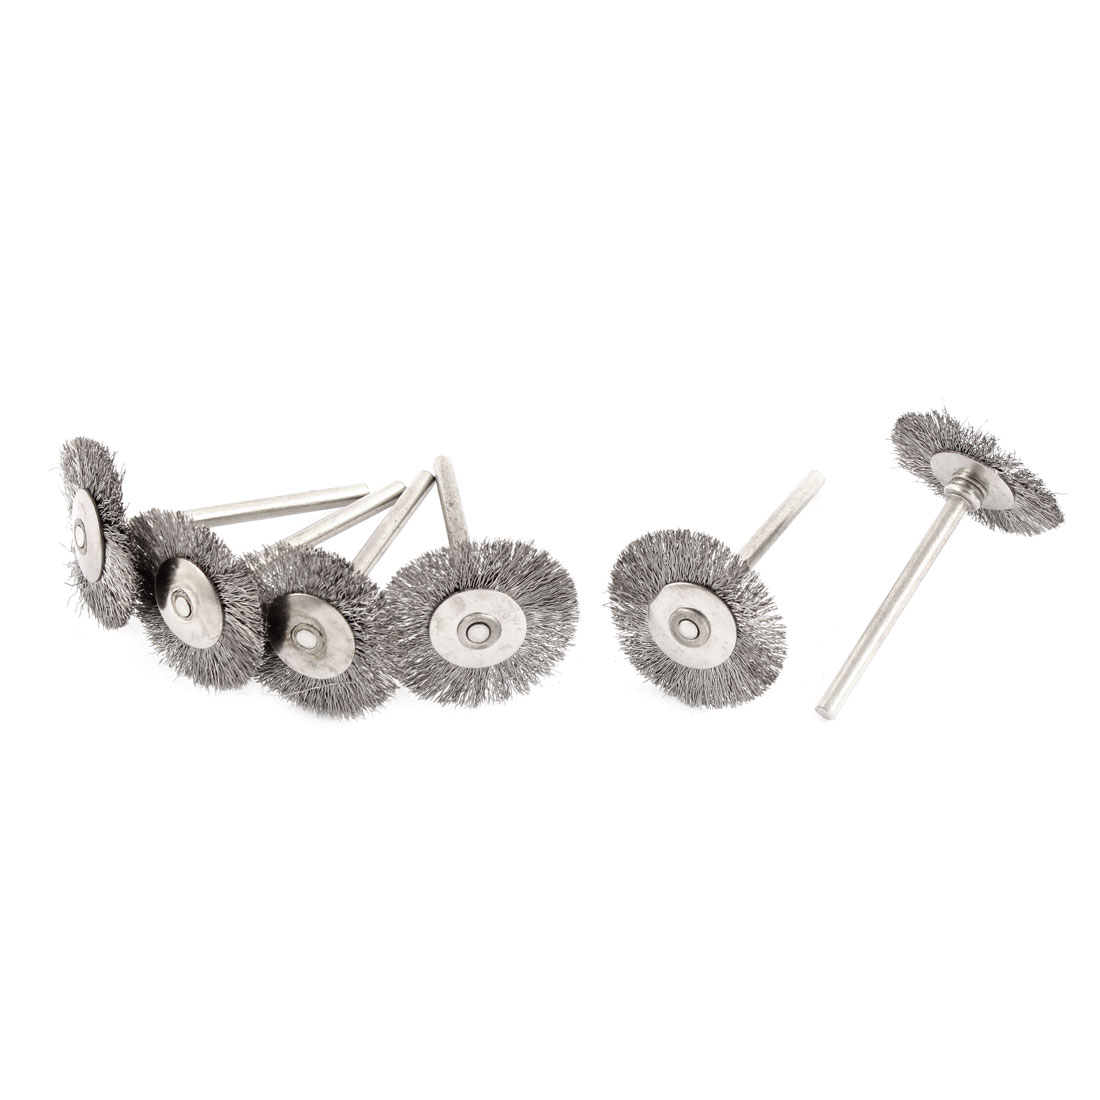 "Rotary 1"" Steel Wire Jewelry Buffing Polishing Wheels Brushes Silver Tone 6pcs"